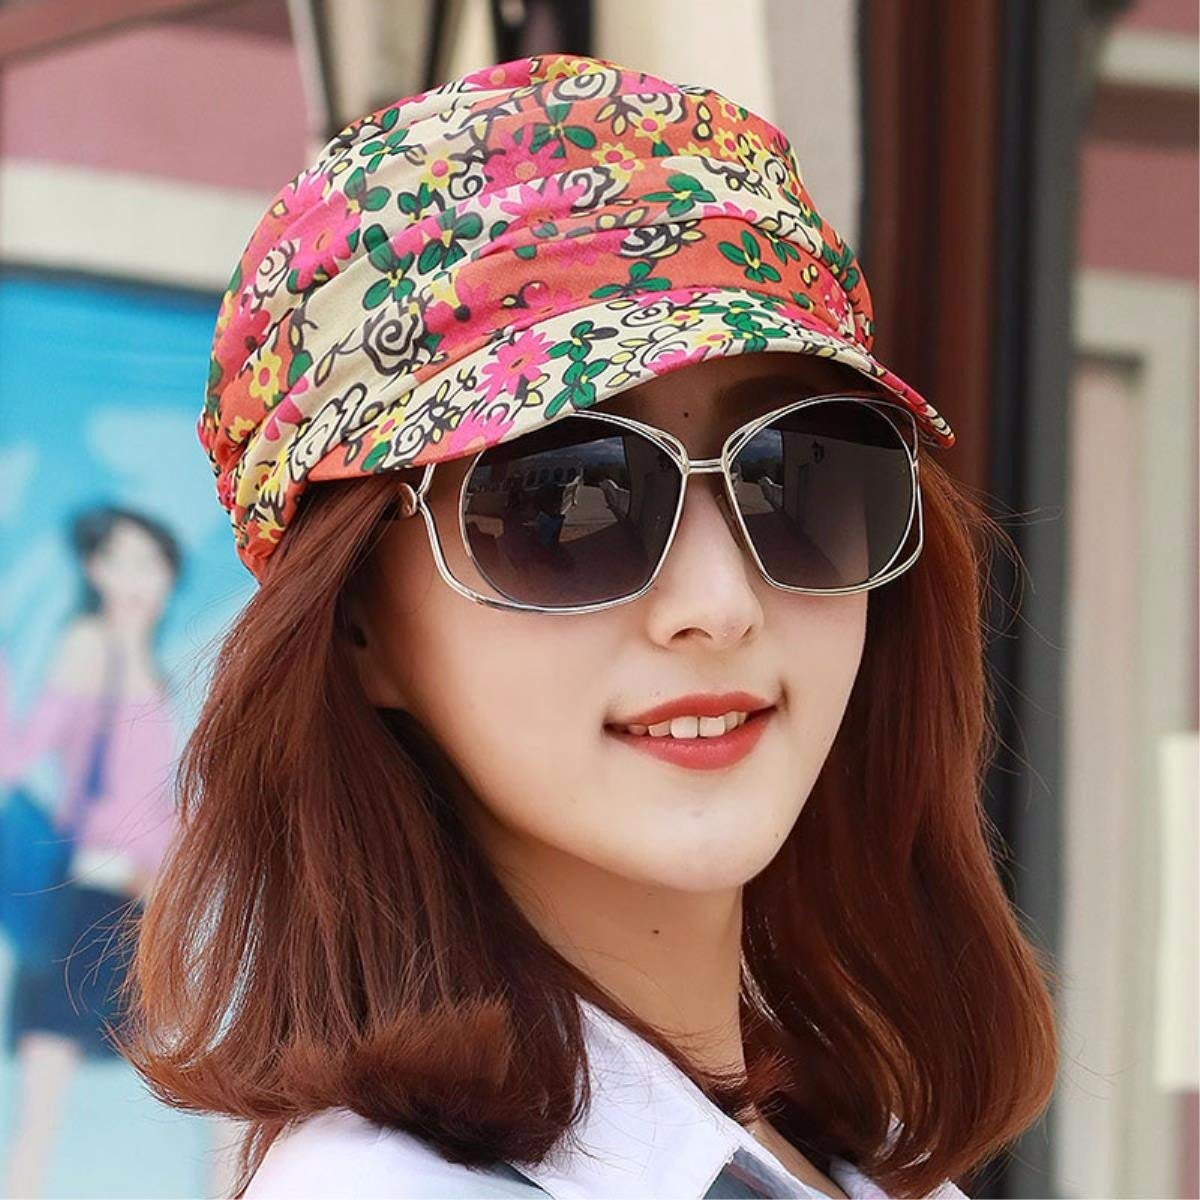 K BRNEBN Hat female spring and summer cap flat top hat visor beach hat sun cap out of play.